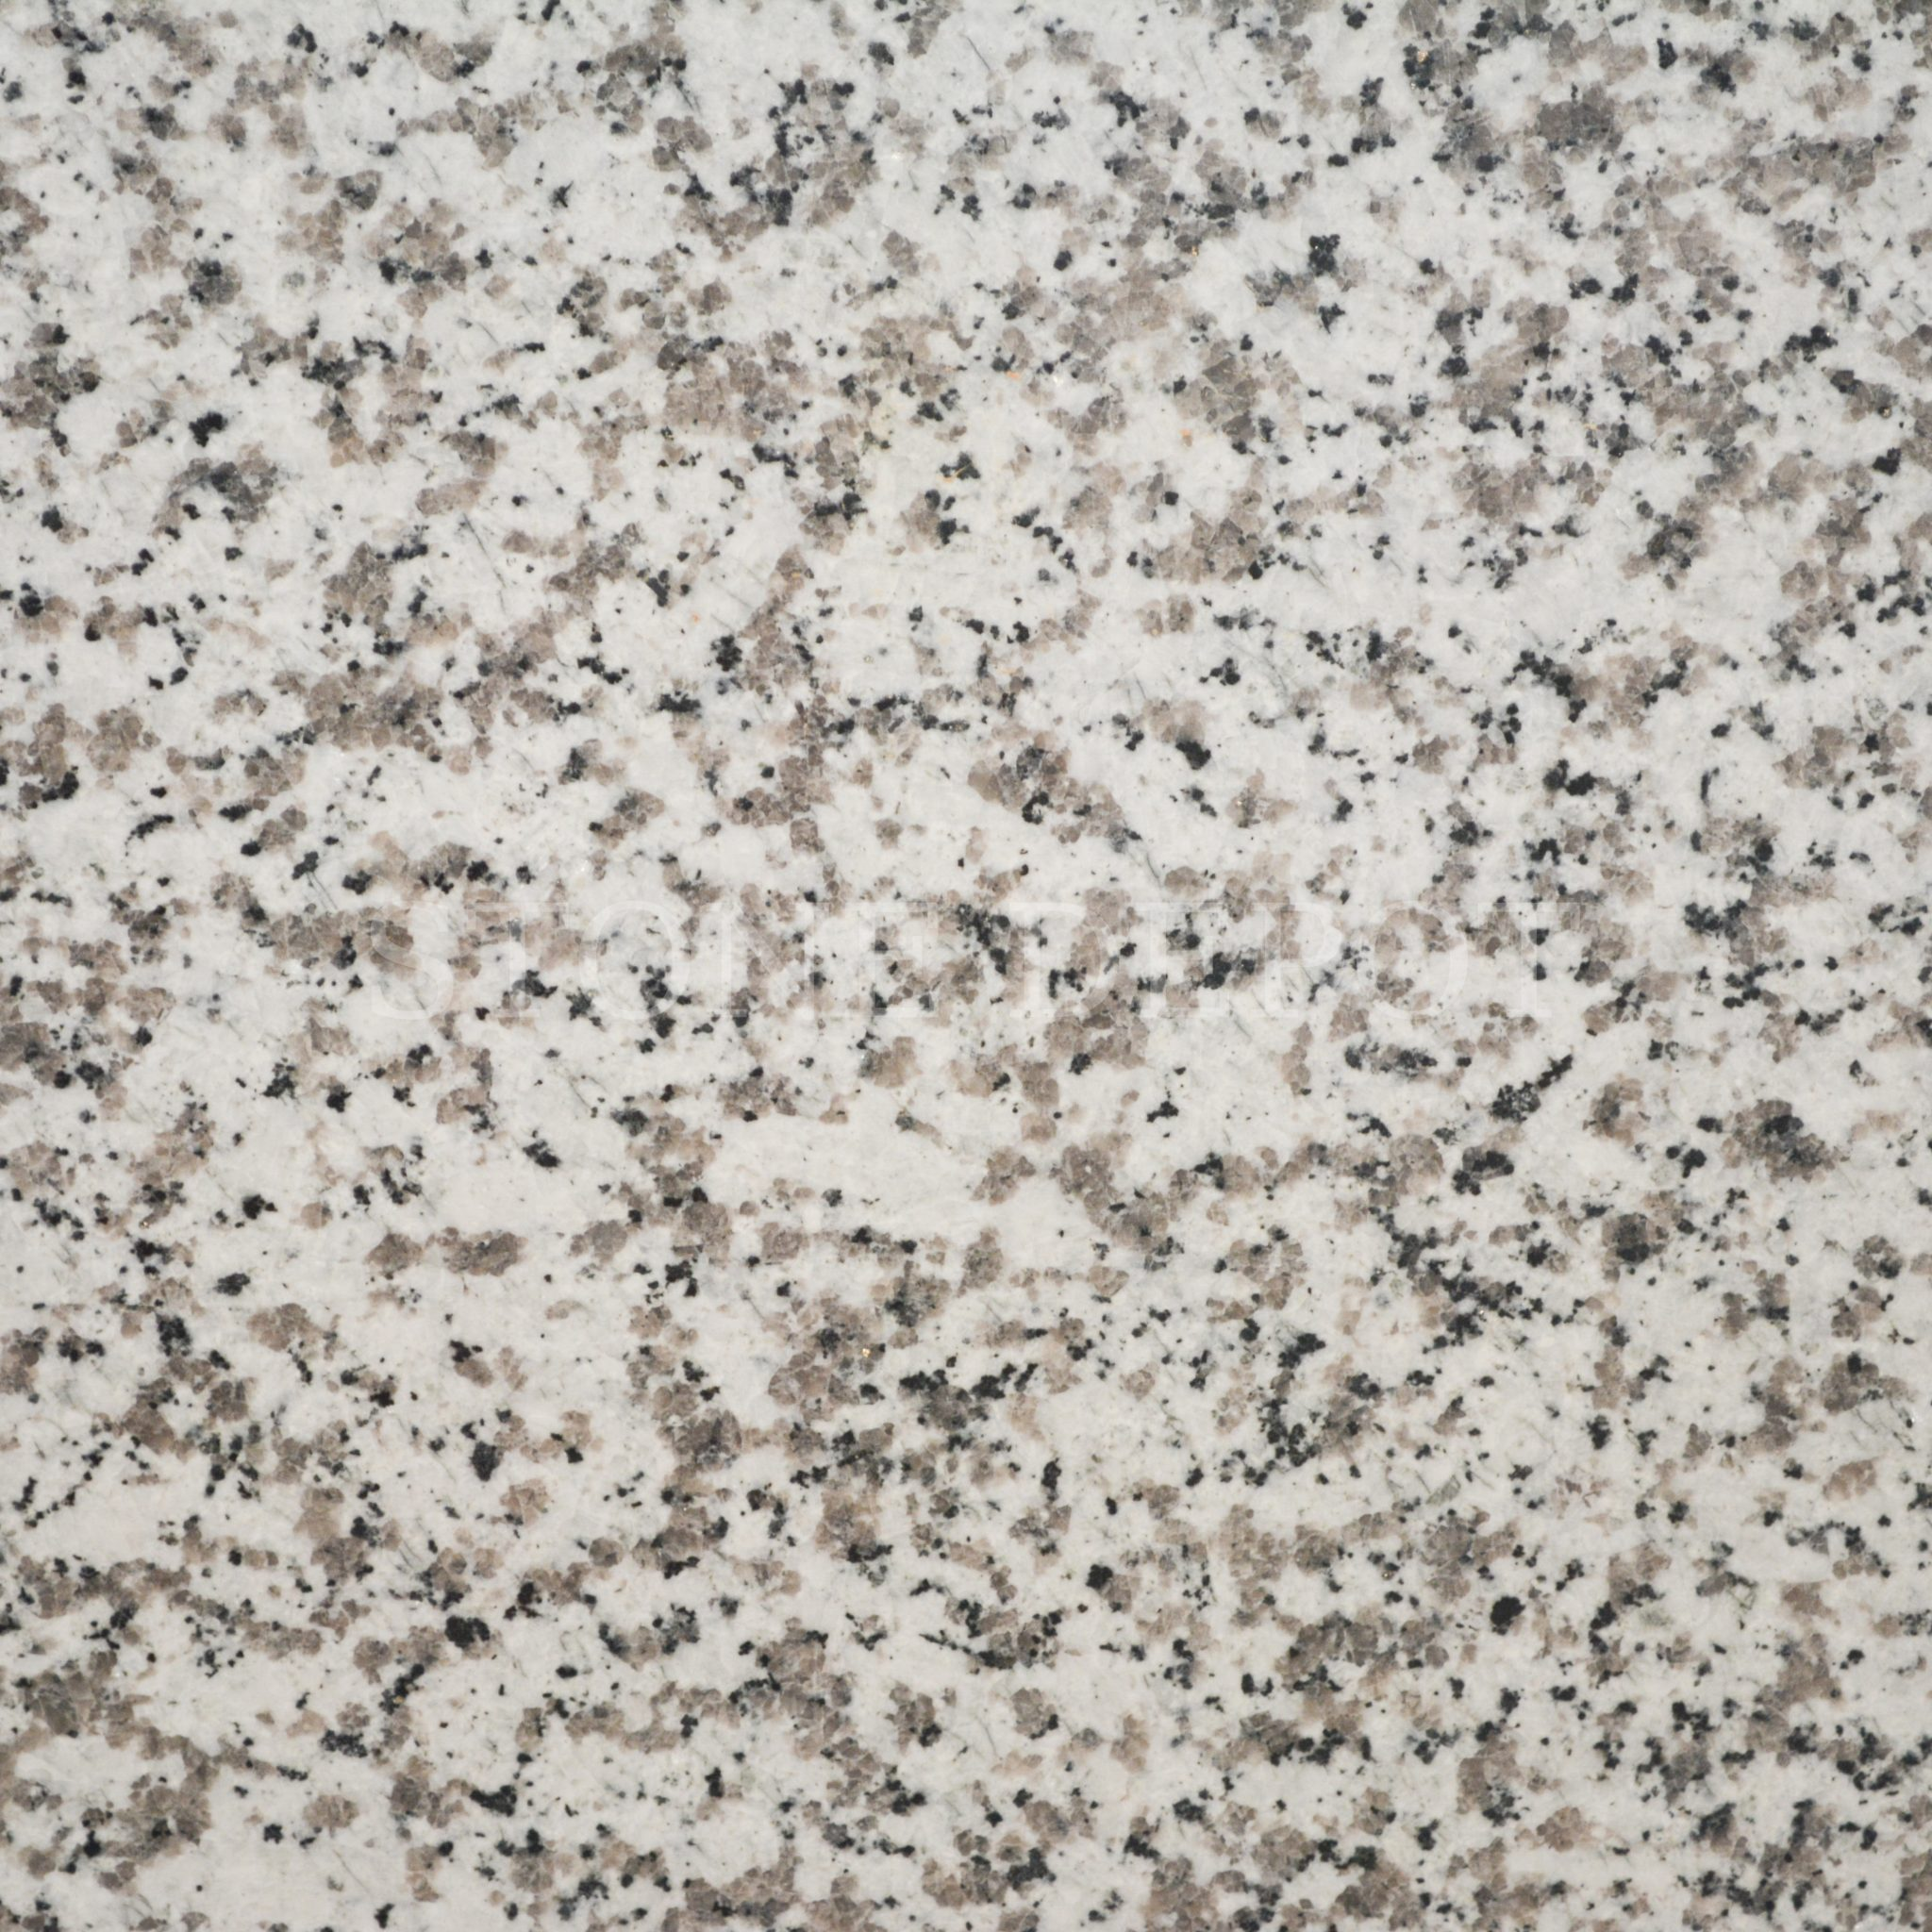 Black and White Granite for Sale in the Philippines